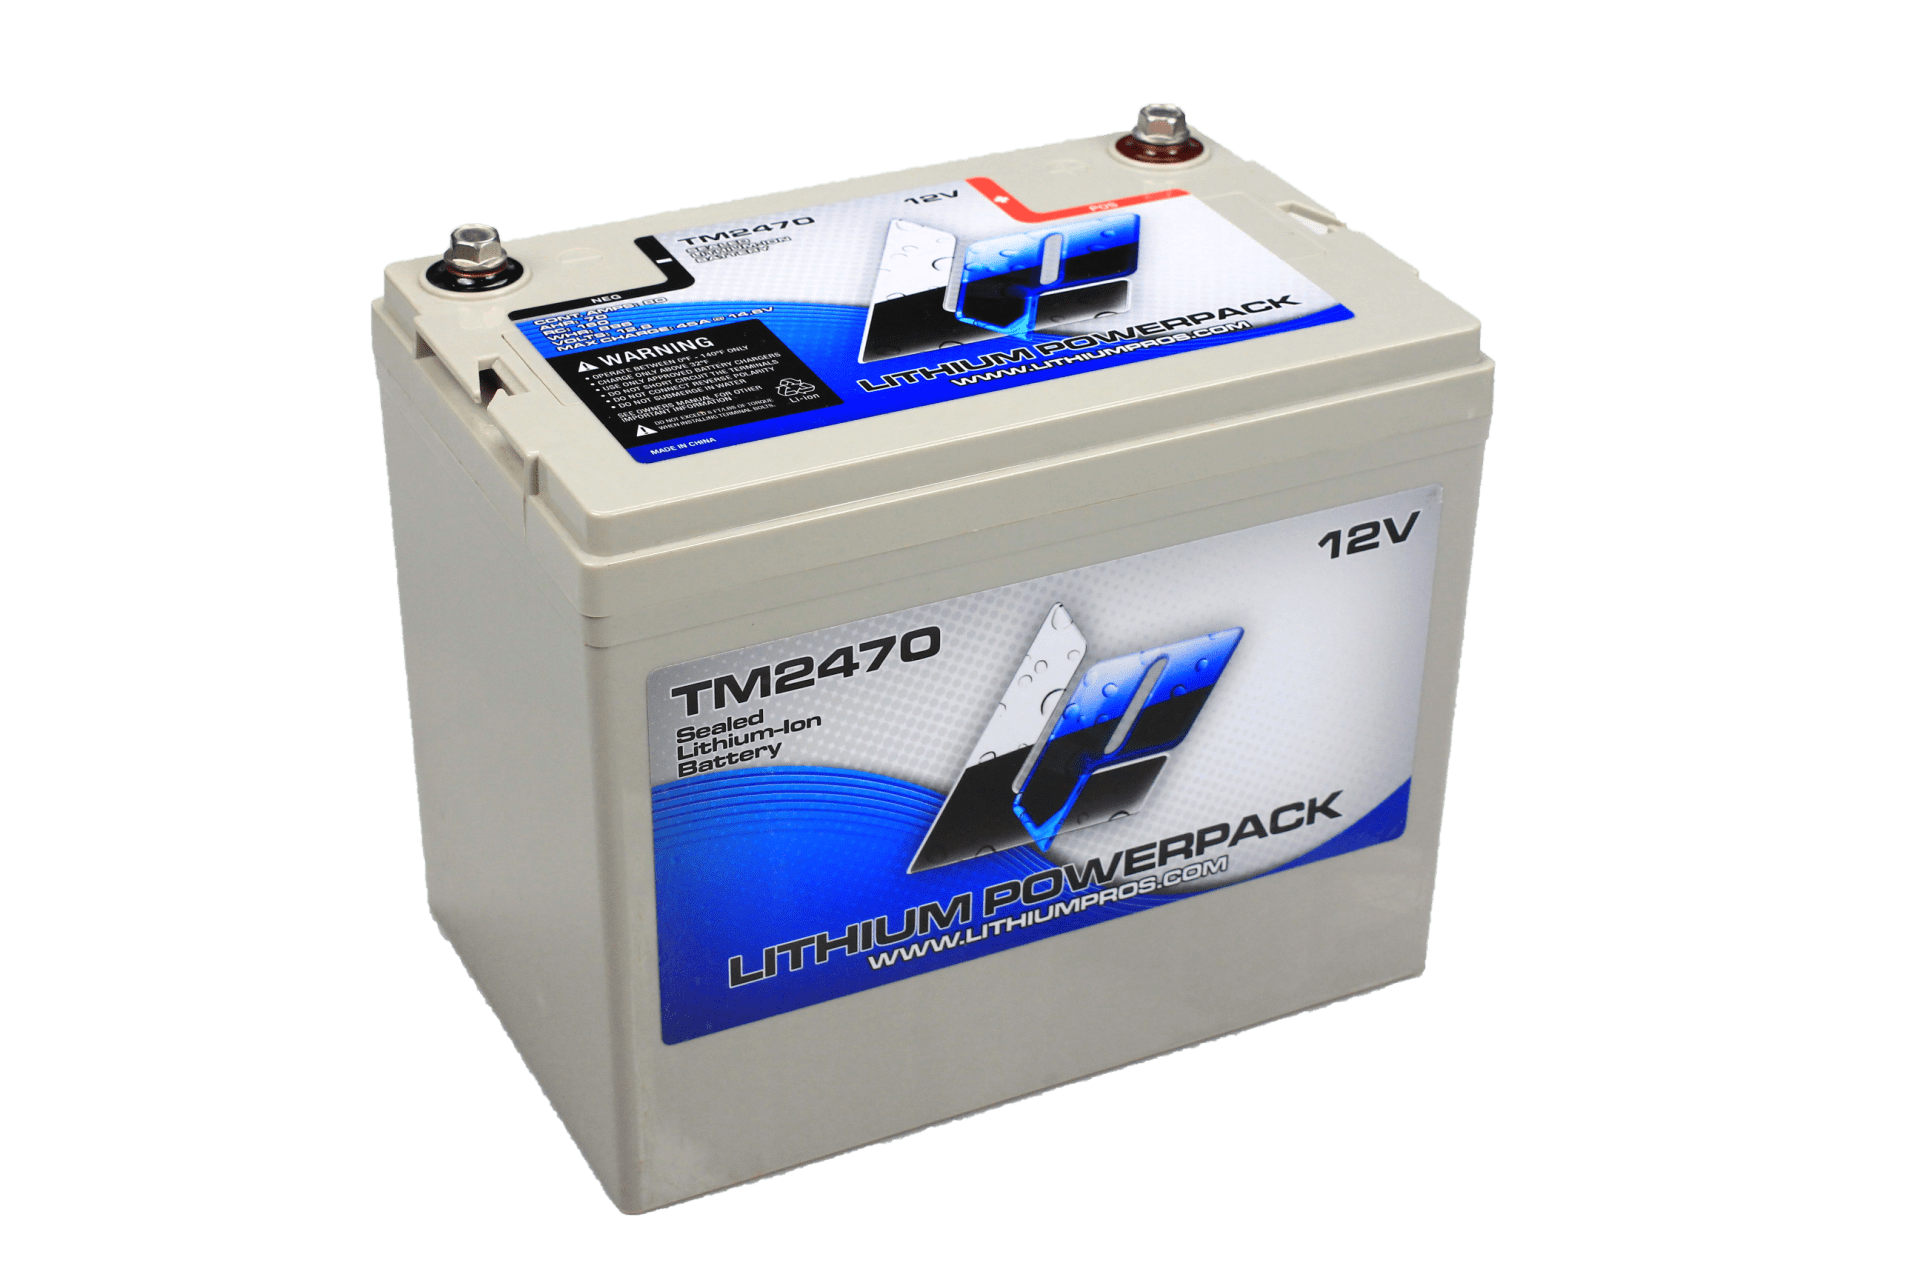 TM2470 12.8V 70Ah Lithium Ion Battery